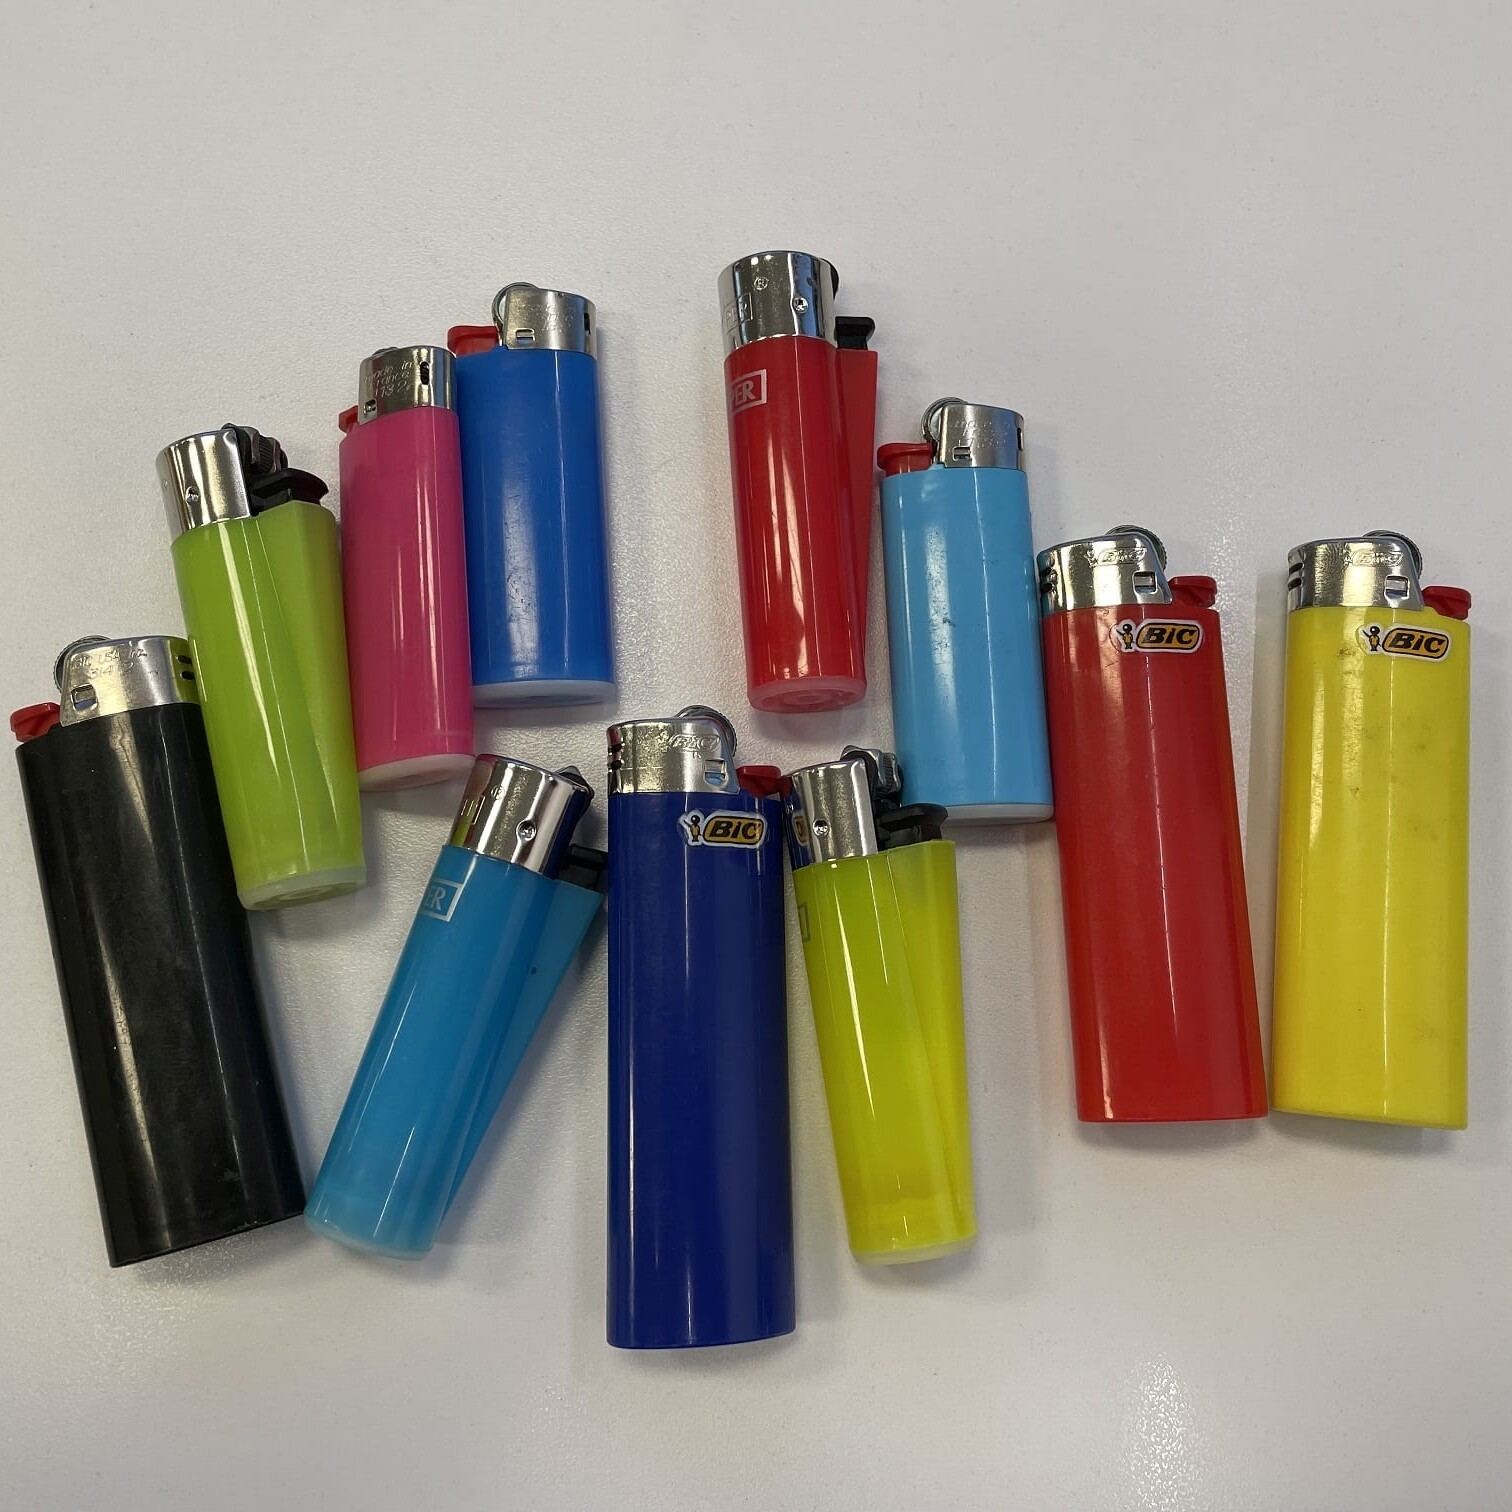 a pile of different lighters on a table